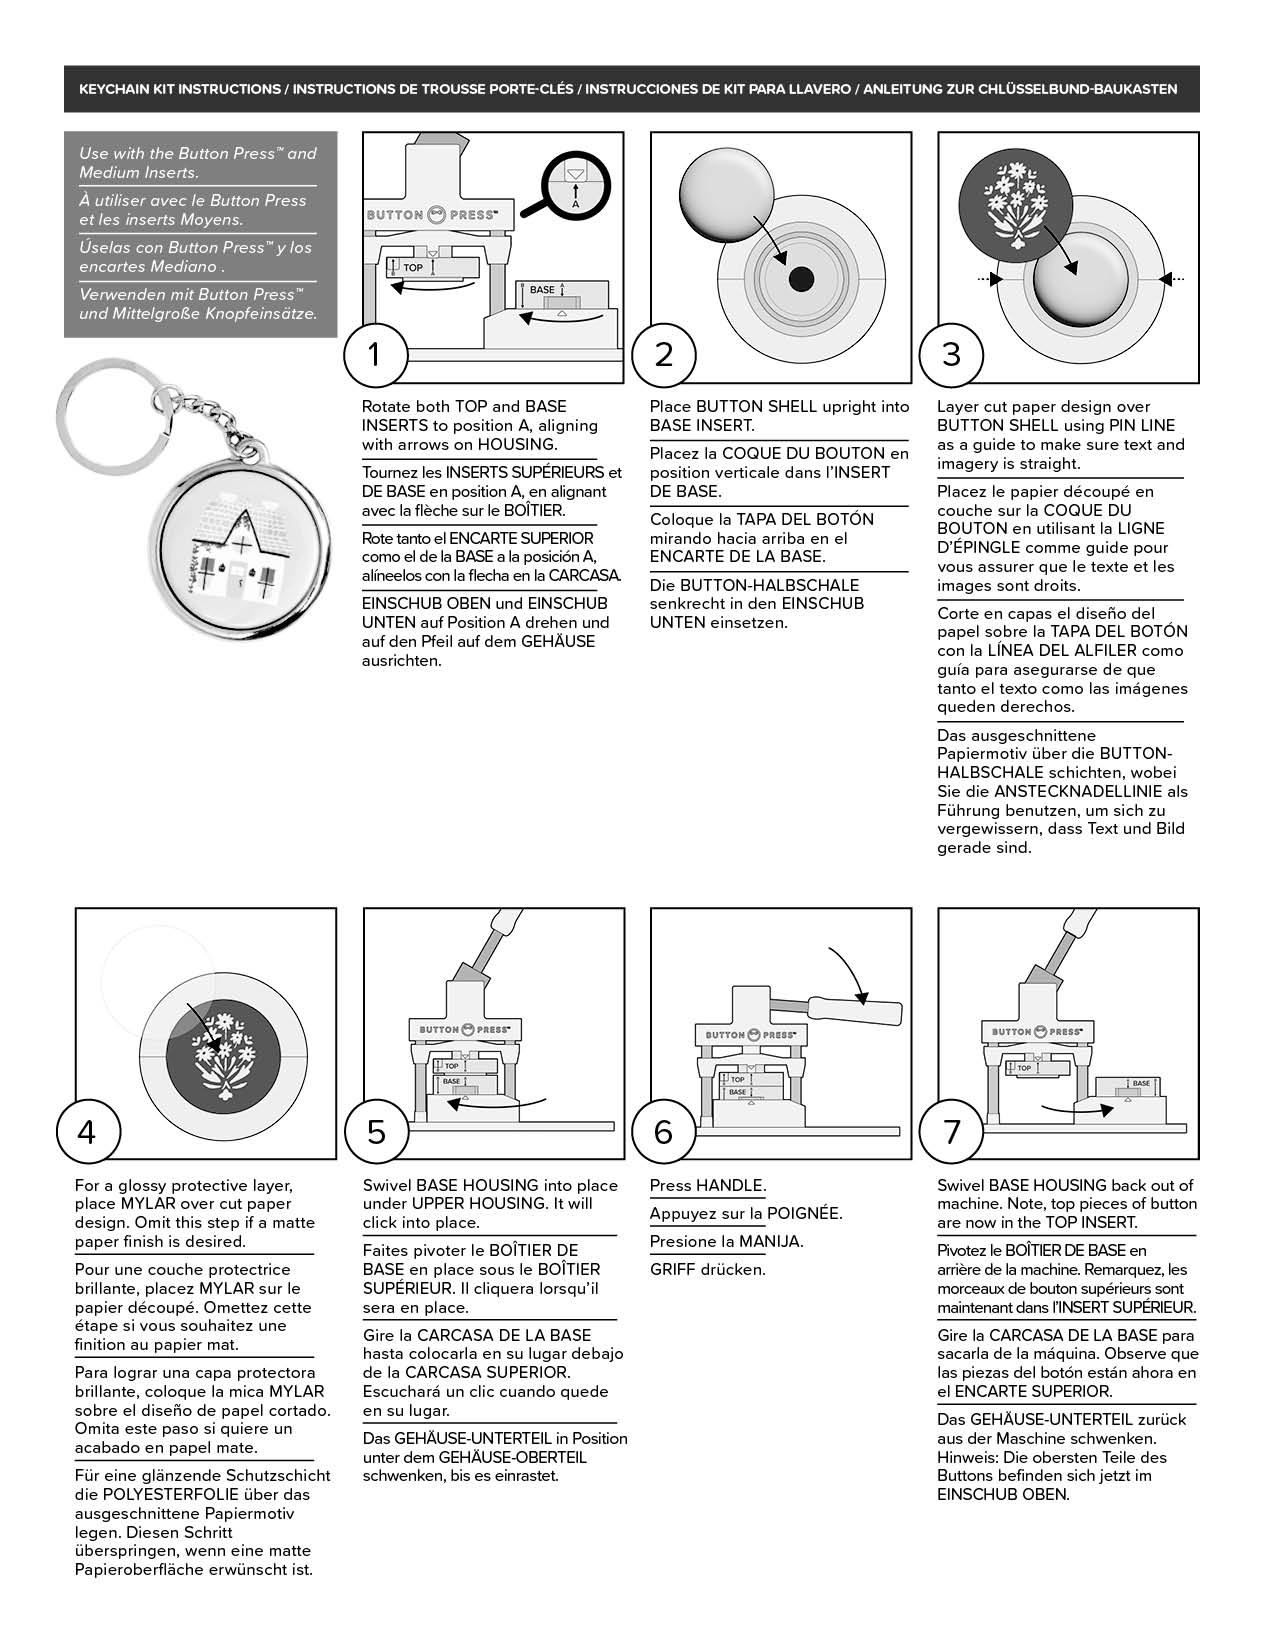 661074_WR_ButtonPress_KeychainKit_Instructions1